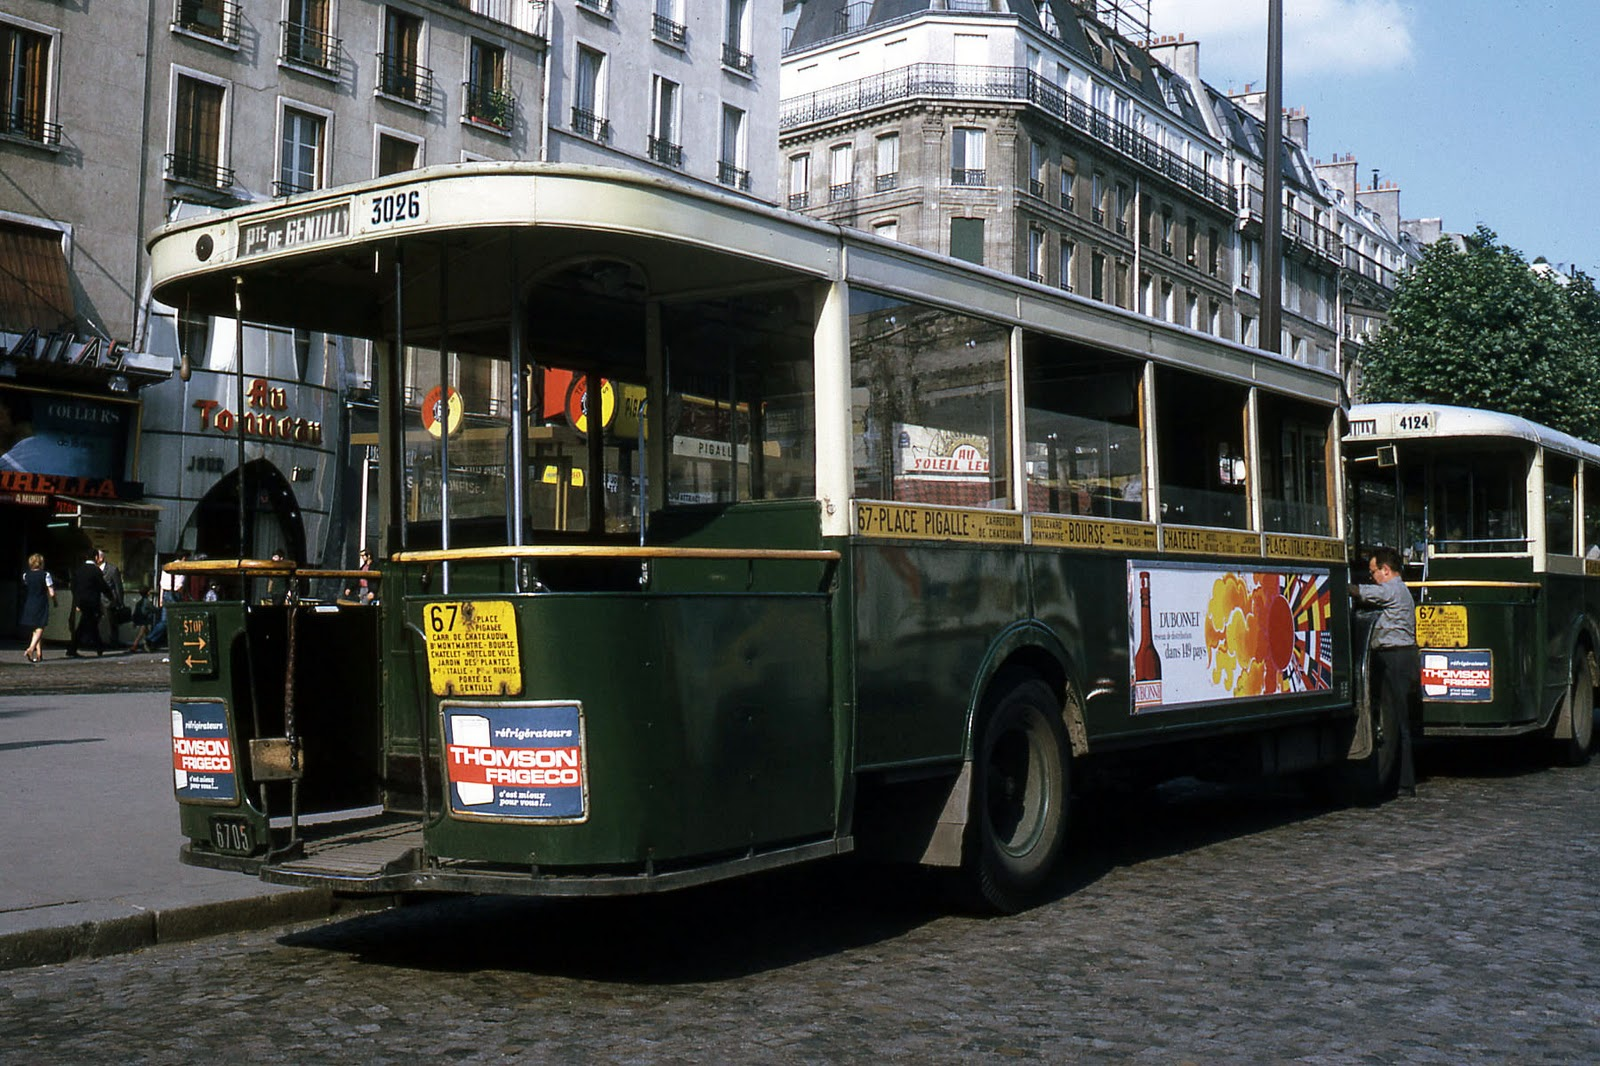 transpress nz  classic renault buses in place pigalle  paris